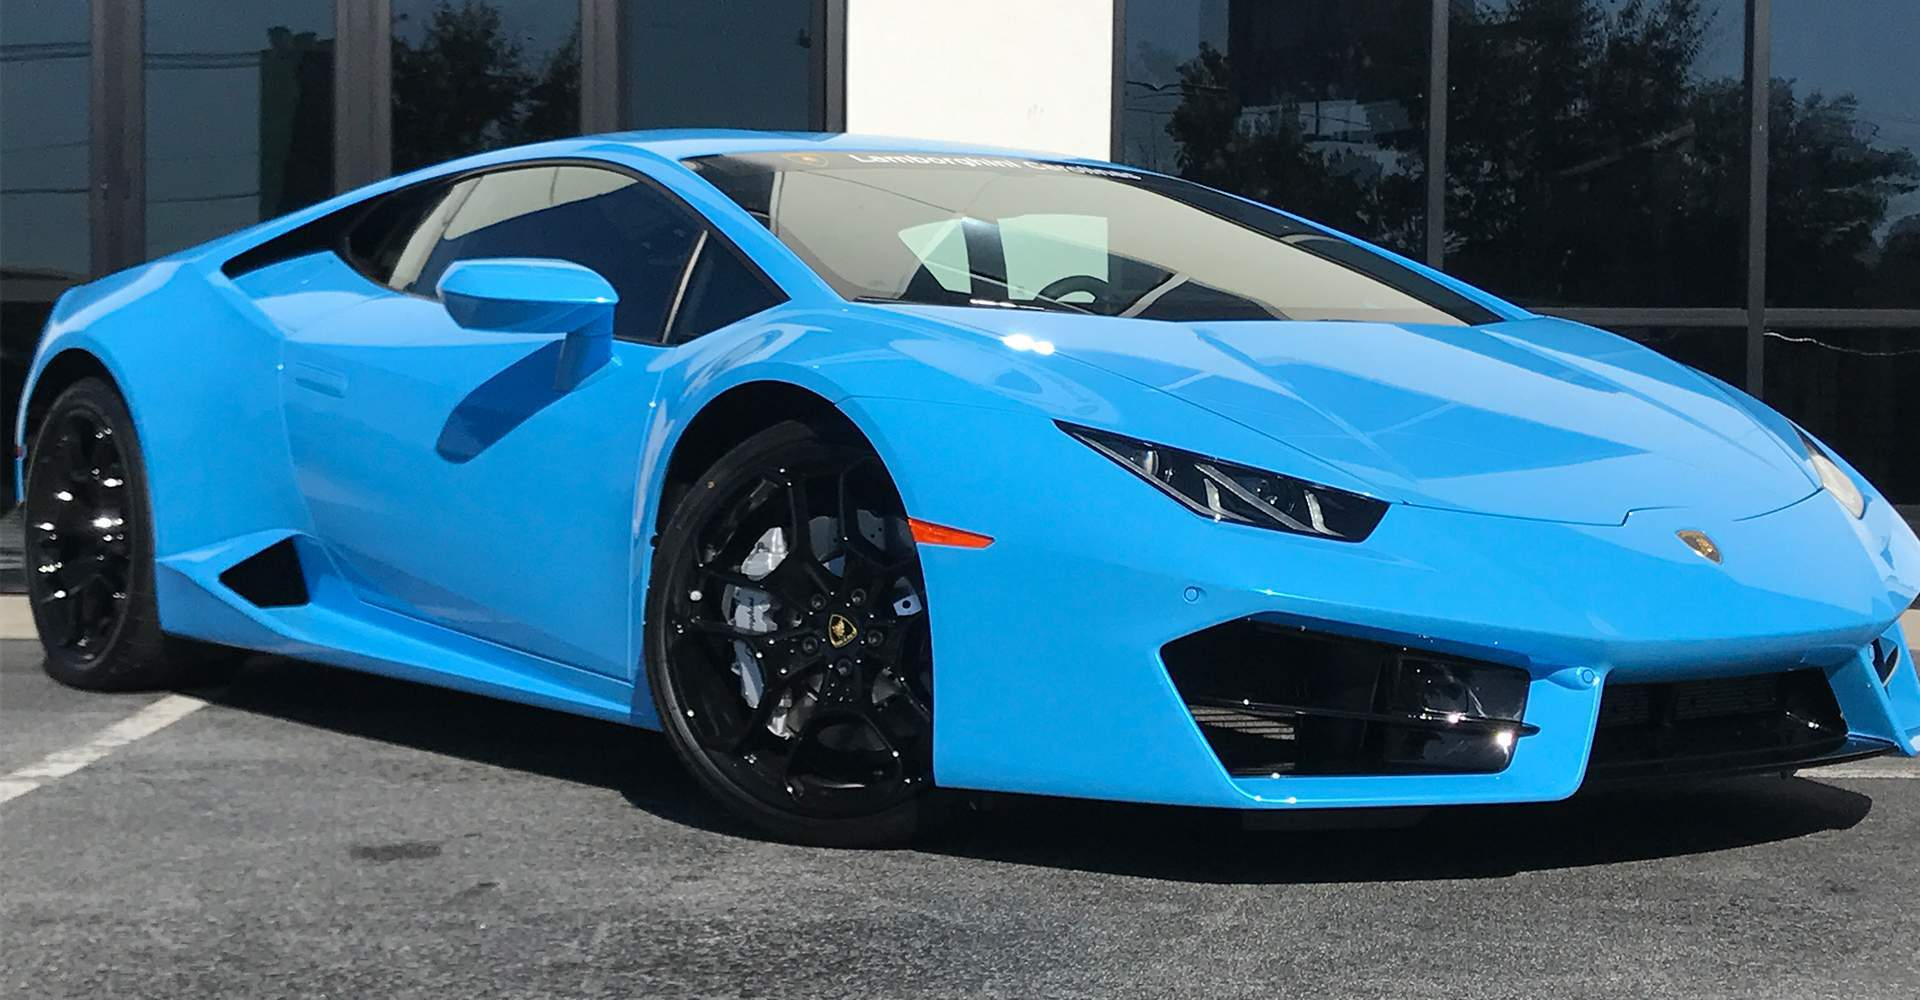 Lamborghini Dealership Charlotte Nc Used Cars